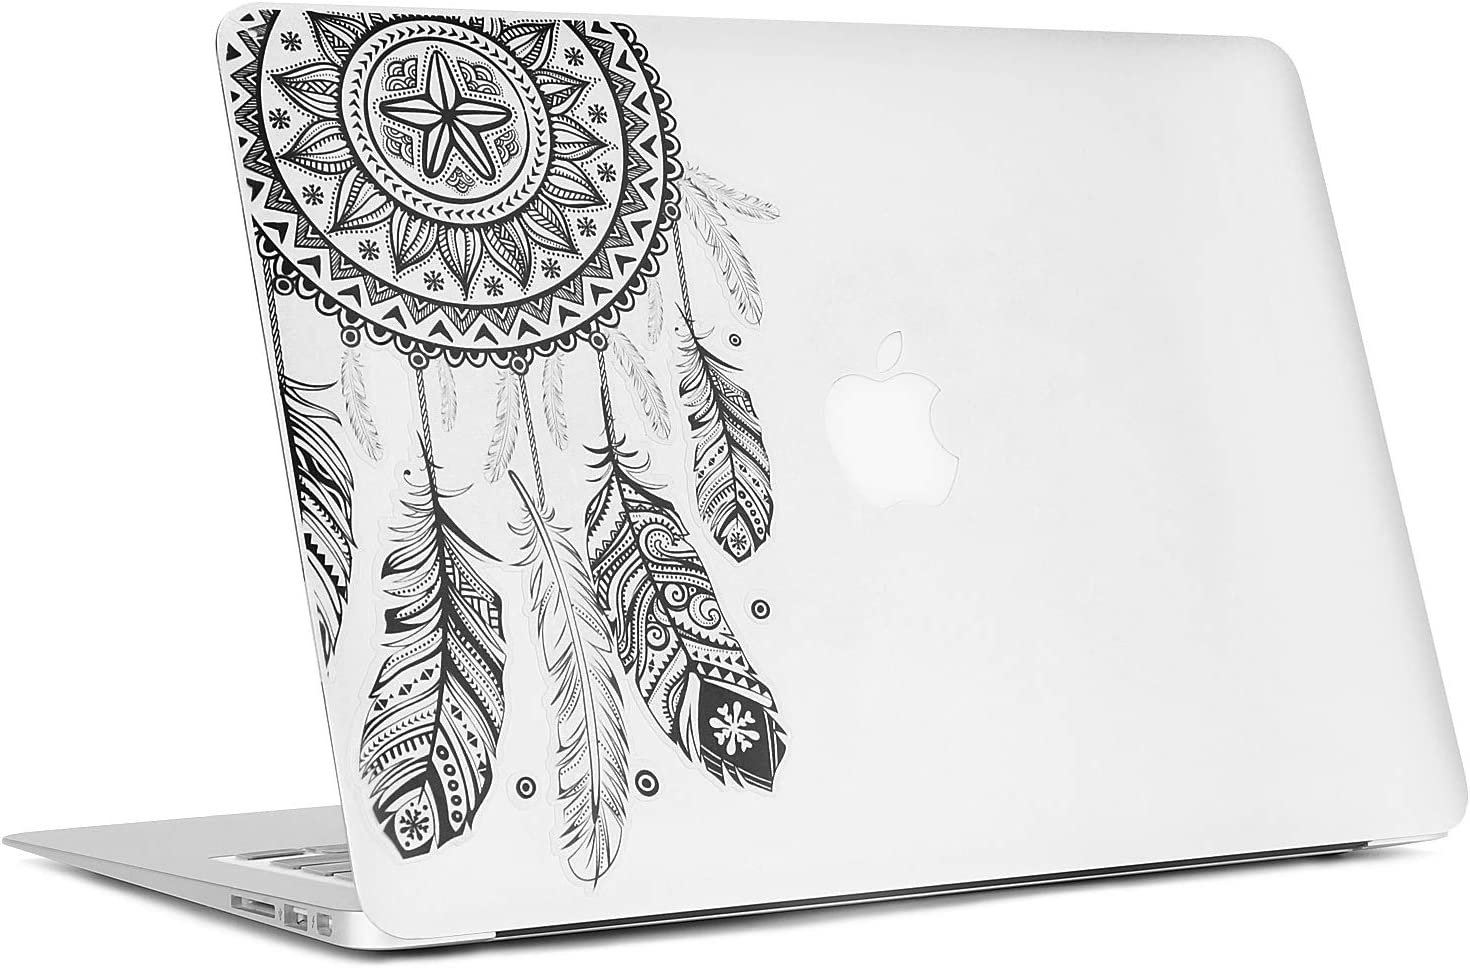 "Last Innovation Dream Catcher Removable Vinyl Decal Sticker Skin for Apple MacBook Pro Air Mac 13"" / Unibody 13"" Laptop"